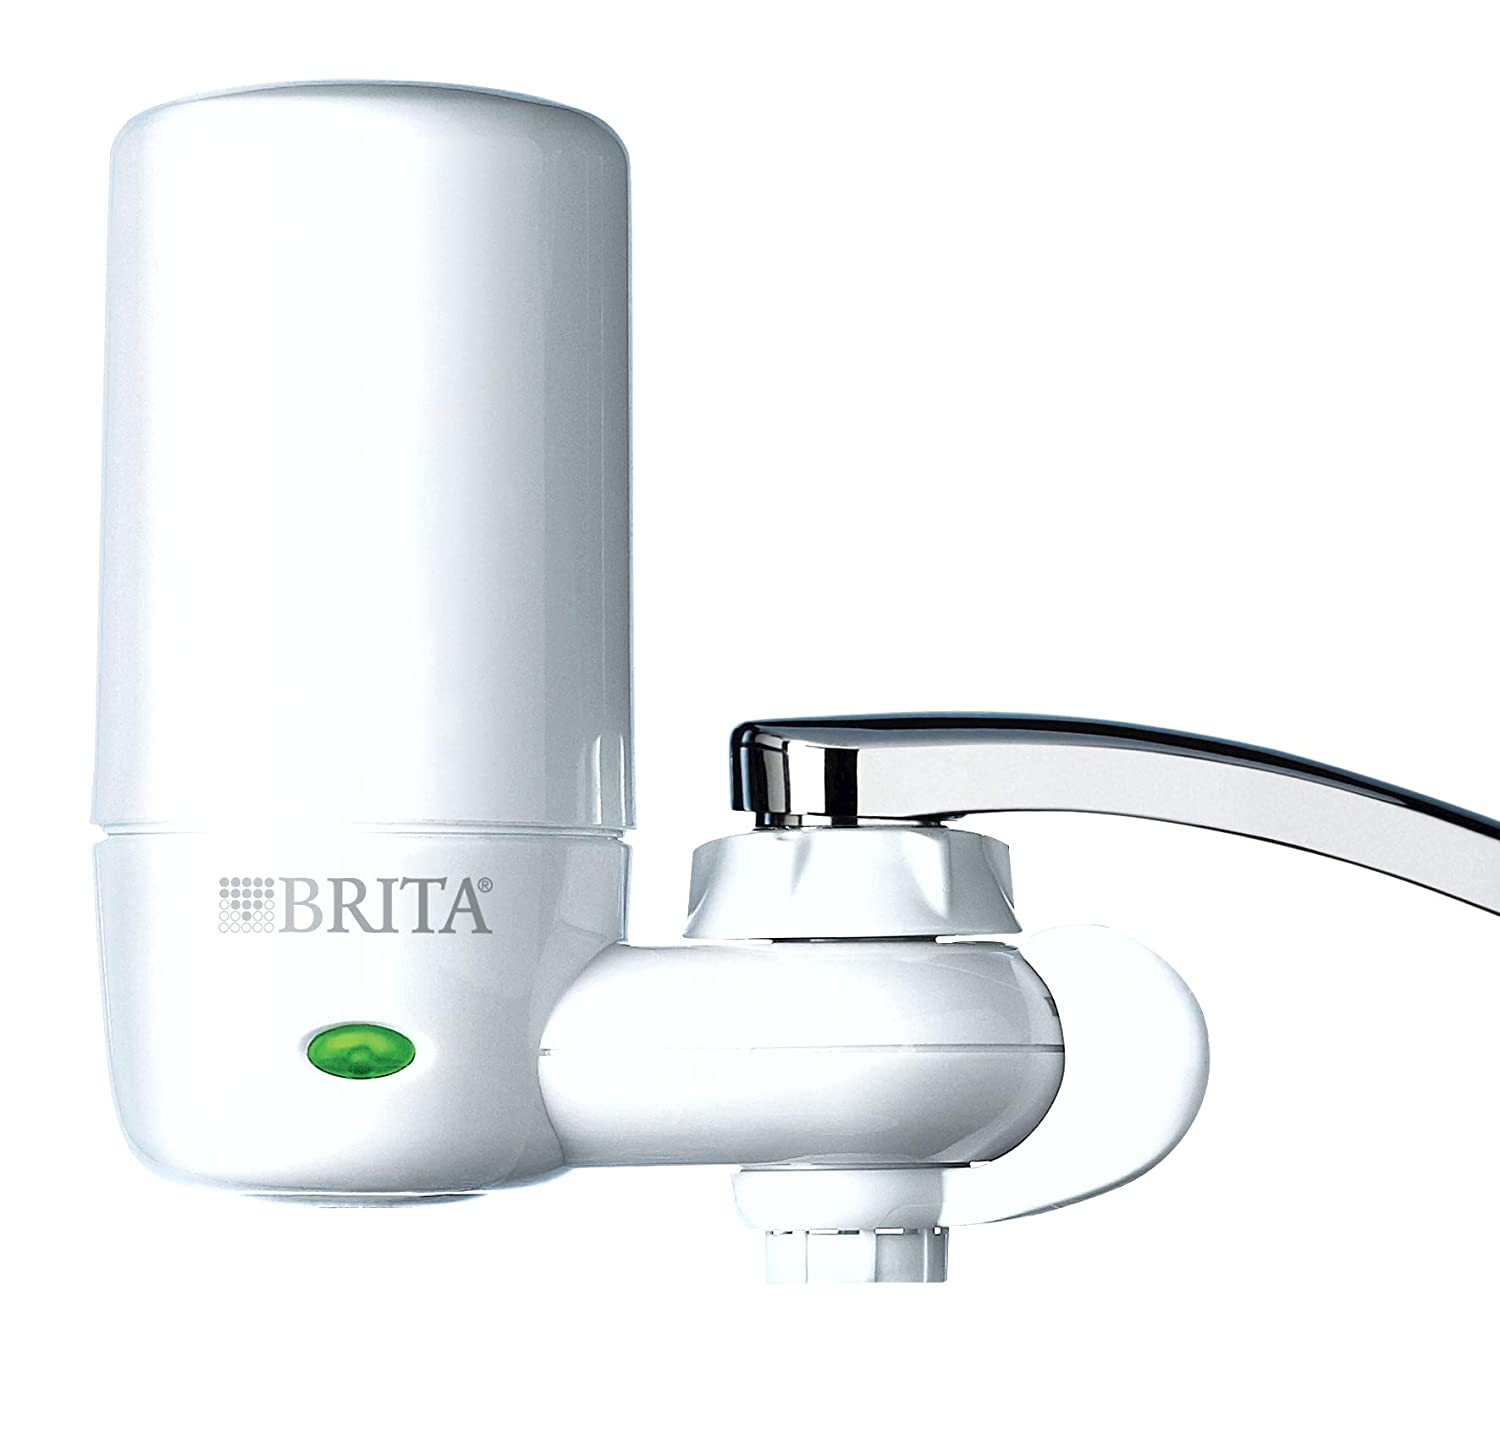 Brita 7540545 Faucet Mount Water Filter